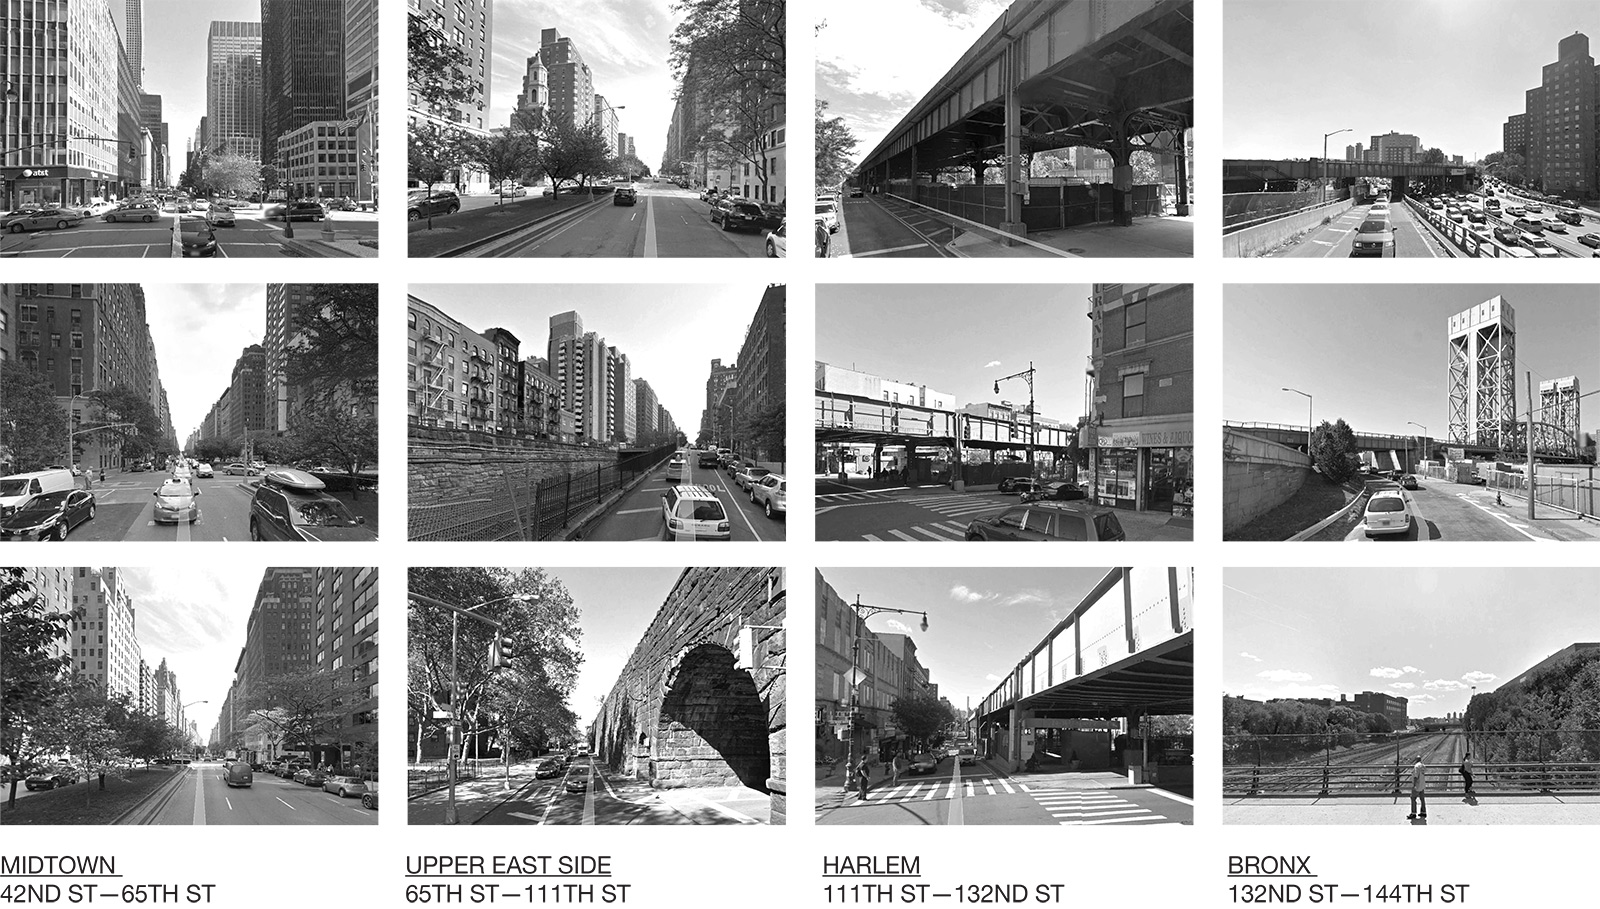 Collection of photos along Park Avenue documenting the underutilized spaces that could be used for infill housing via ININ